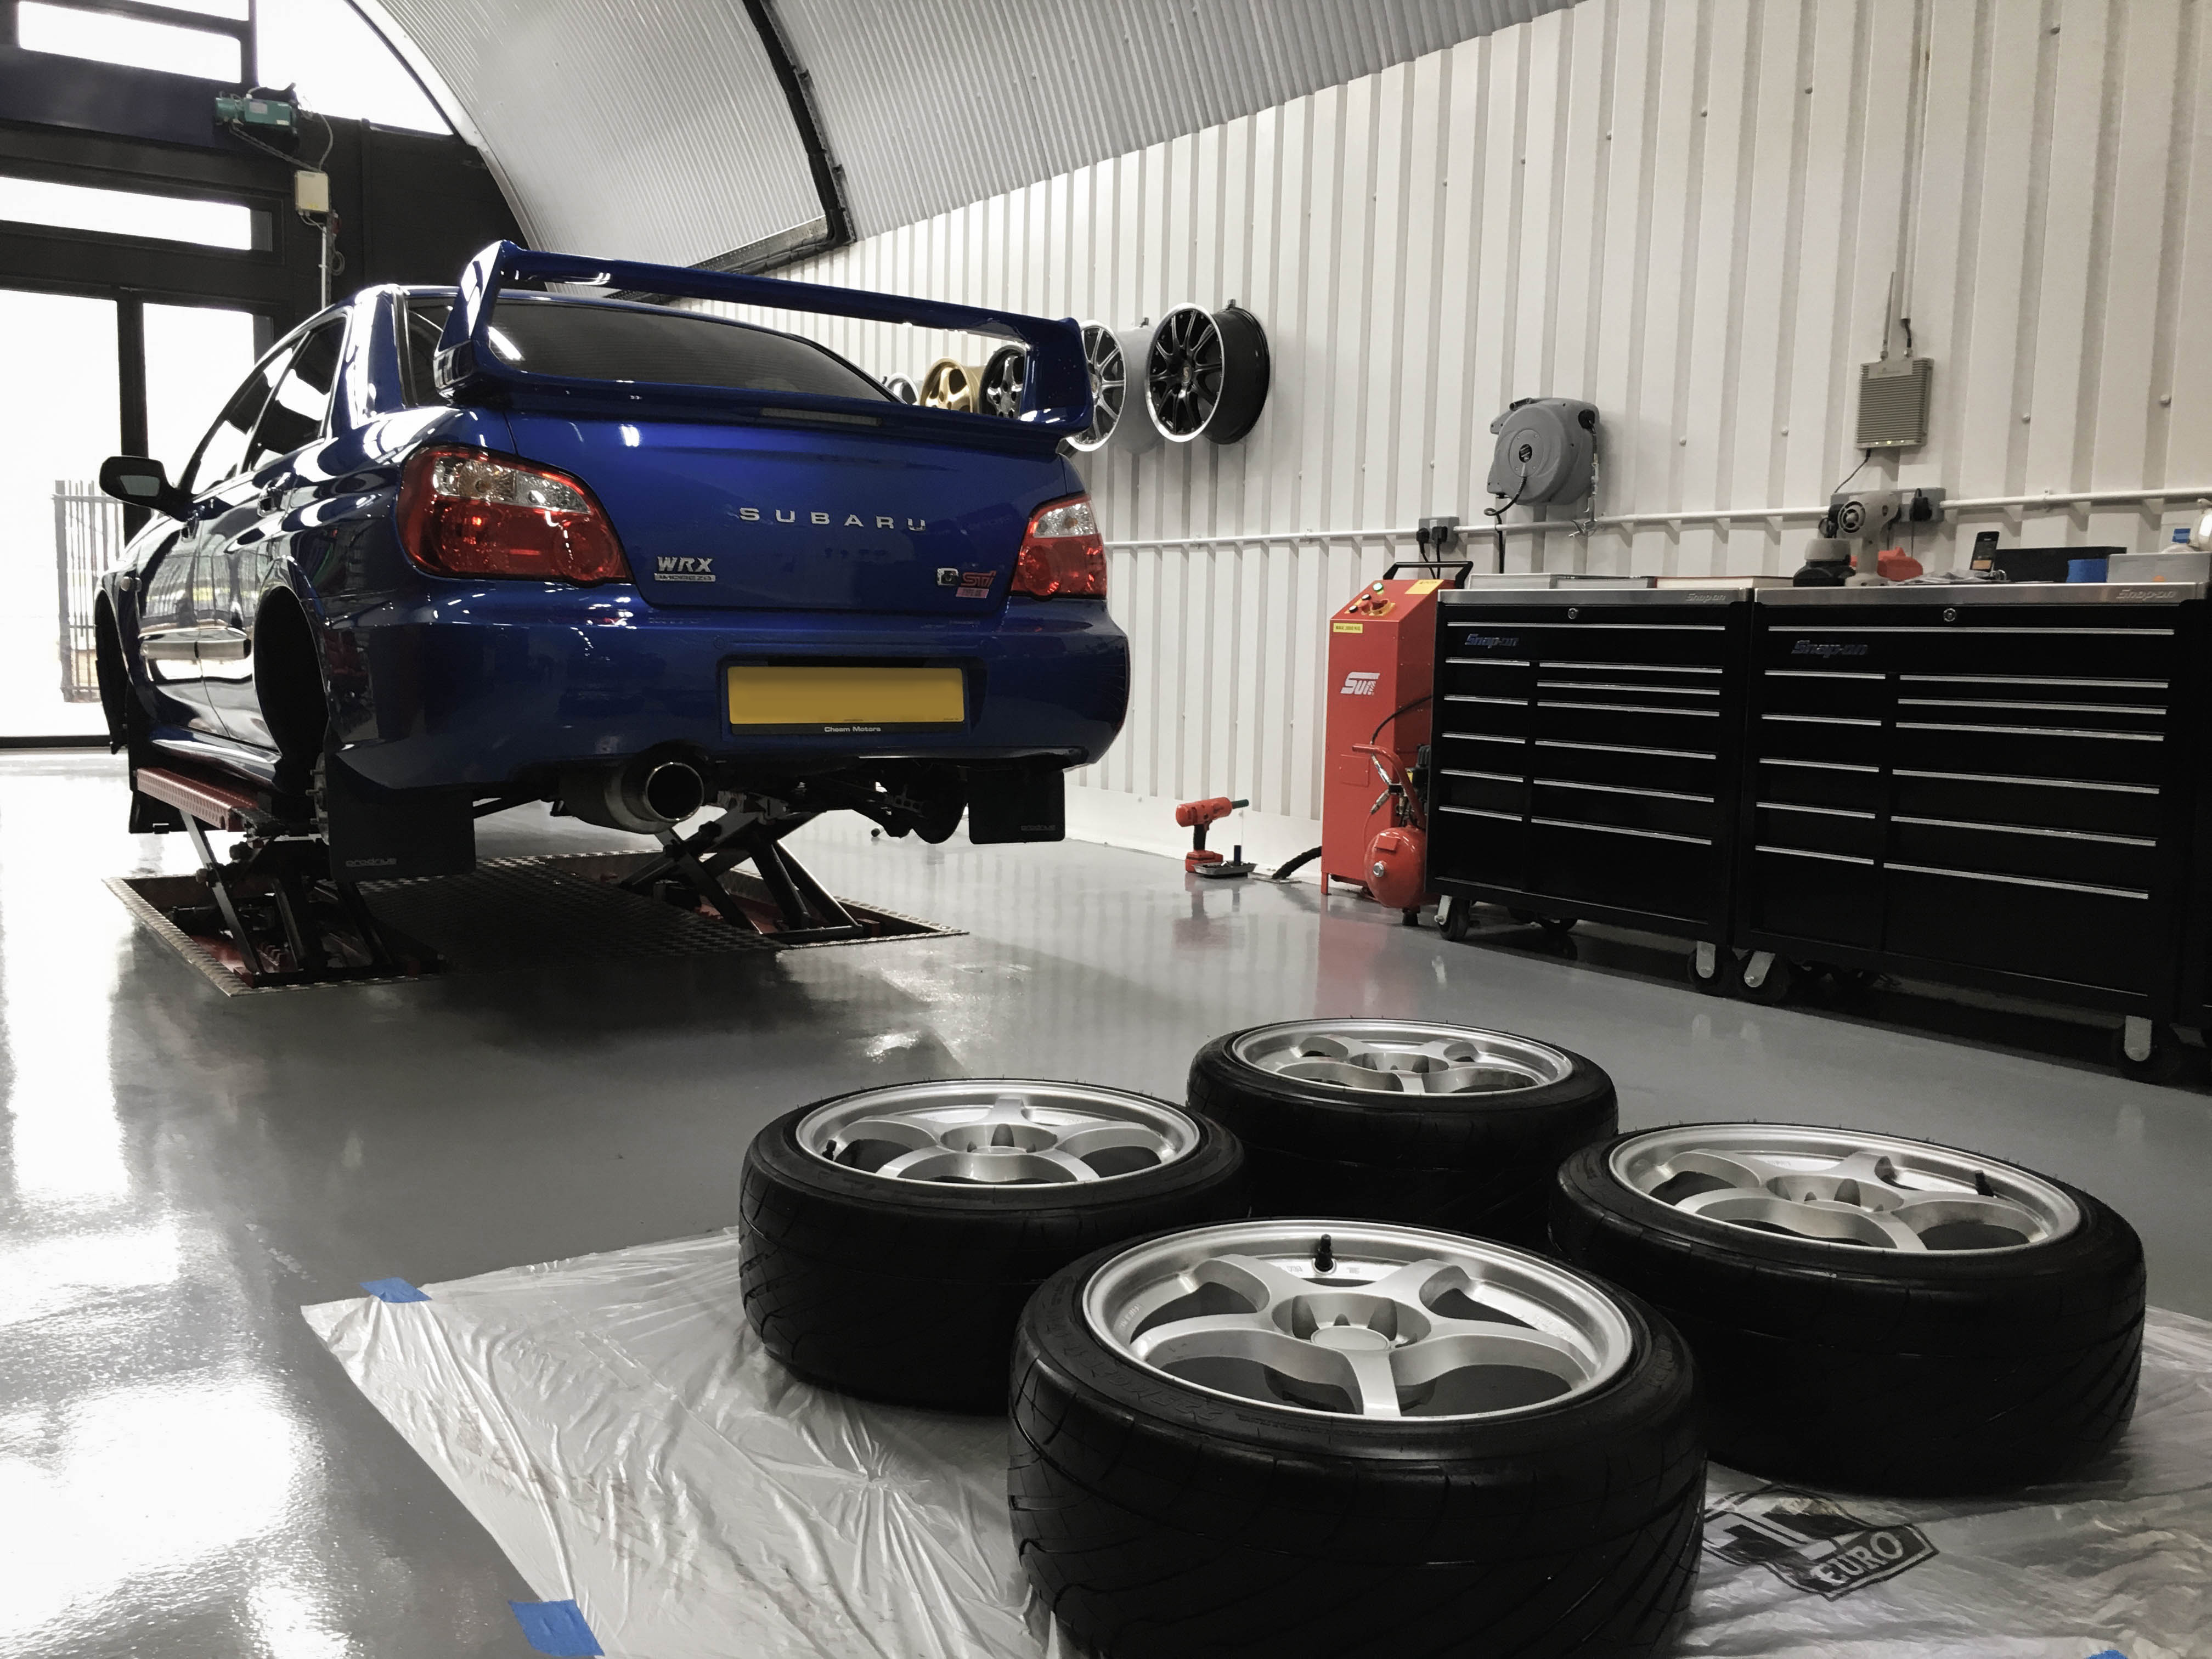 Subaru-Impreza-WRX-rear-wheels-off